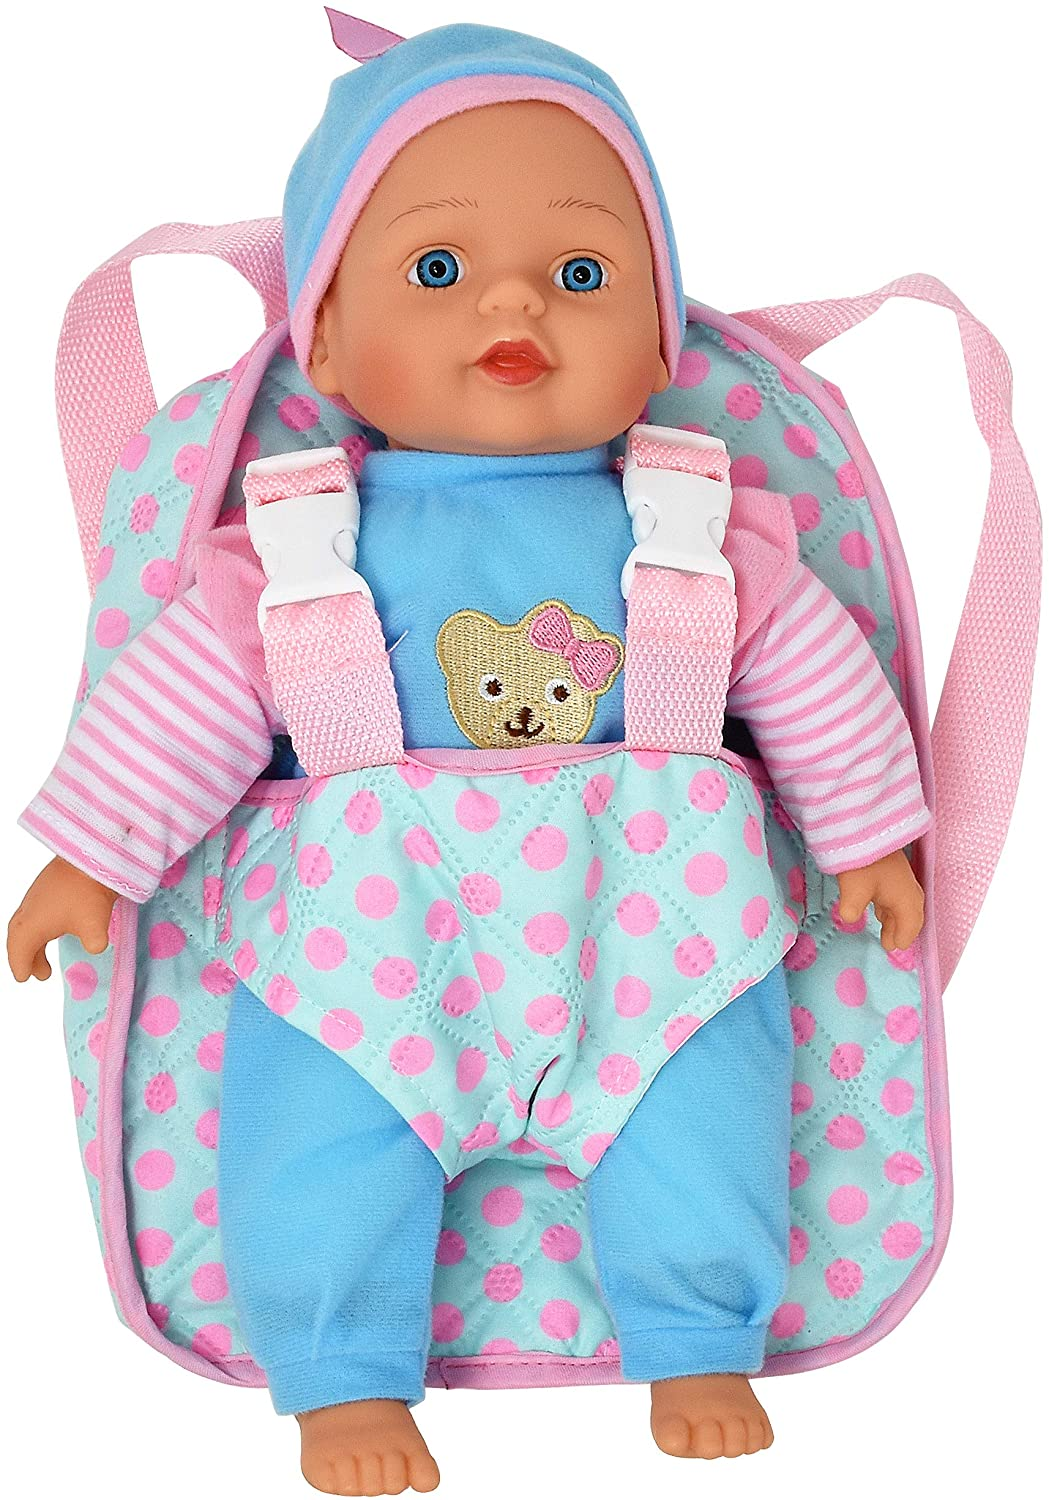 Dolls To Play Soft Baby Doll & Backpack Carrier, 13-Inch